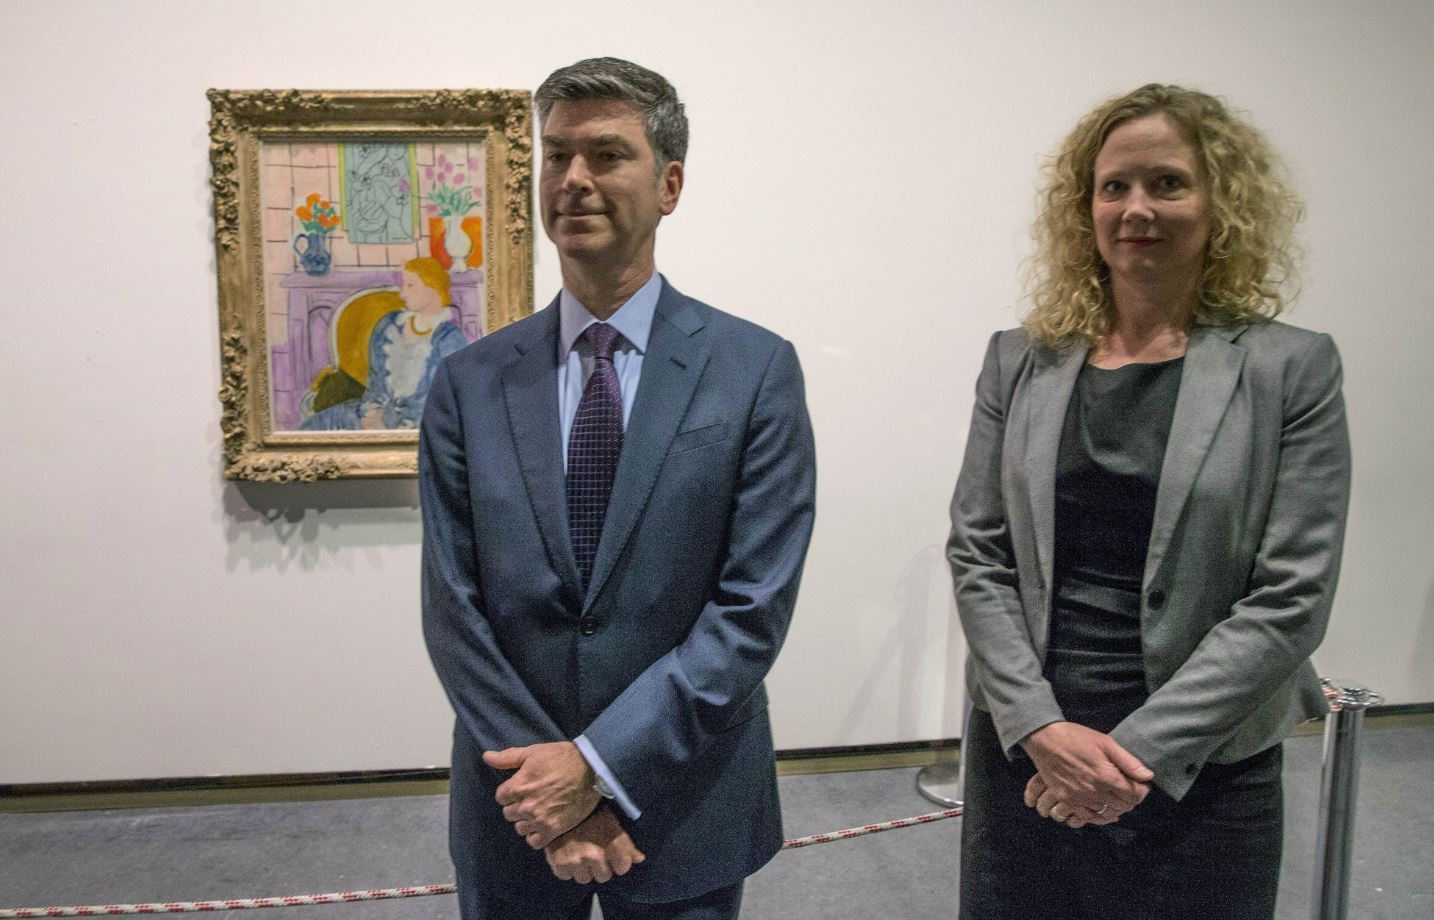 Tone Hansen (R), director of the Henie Onstad art gallery, and Christopher A Marinello, member of the Rosenberg family, pose in front of the painting titled